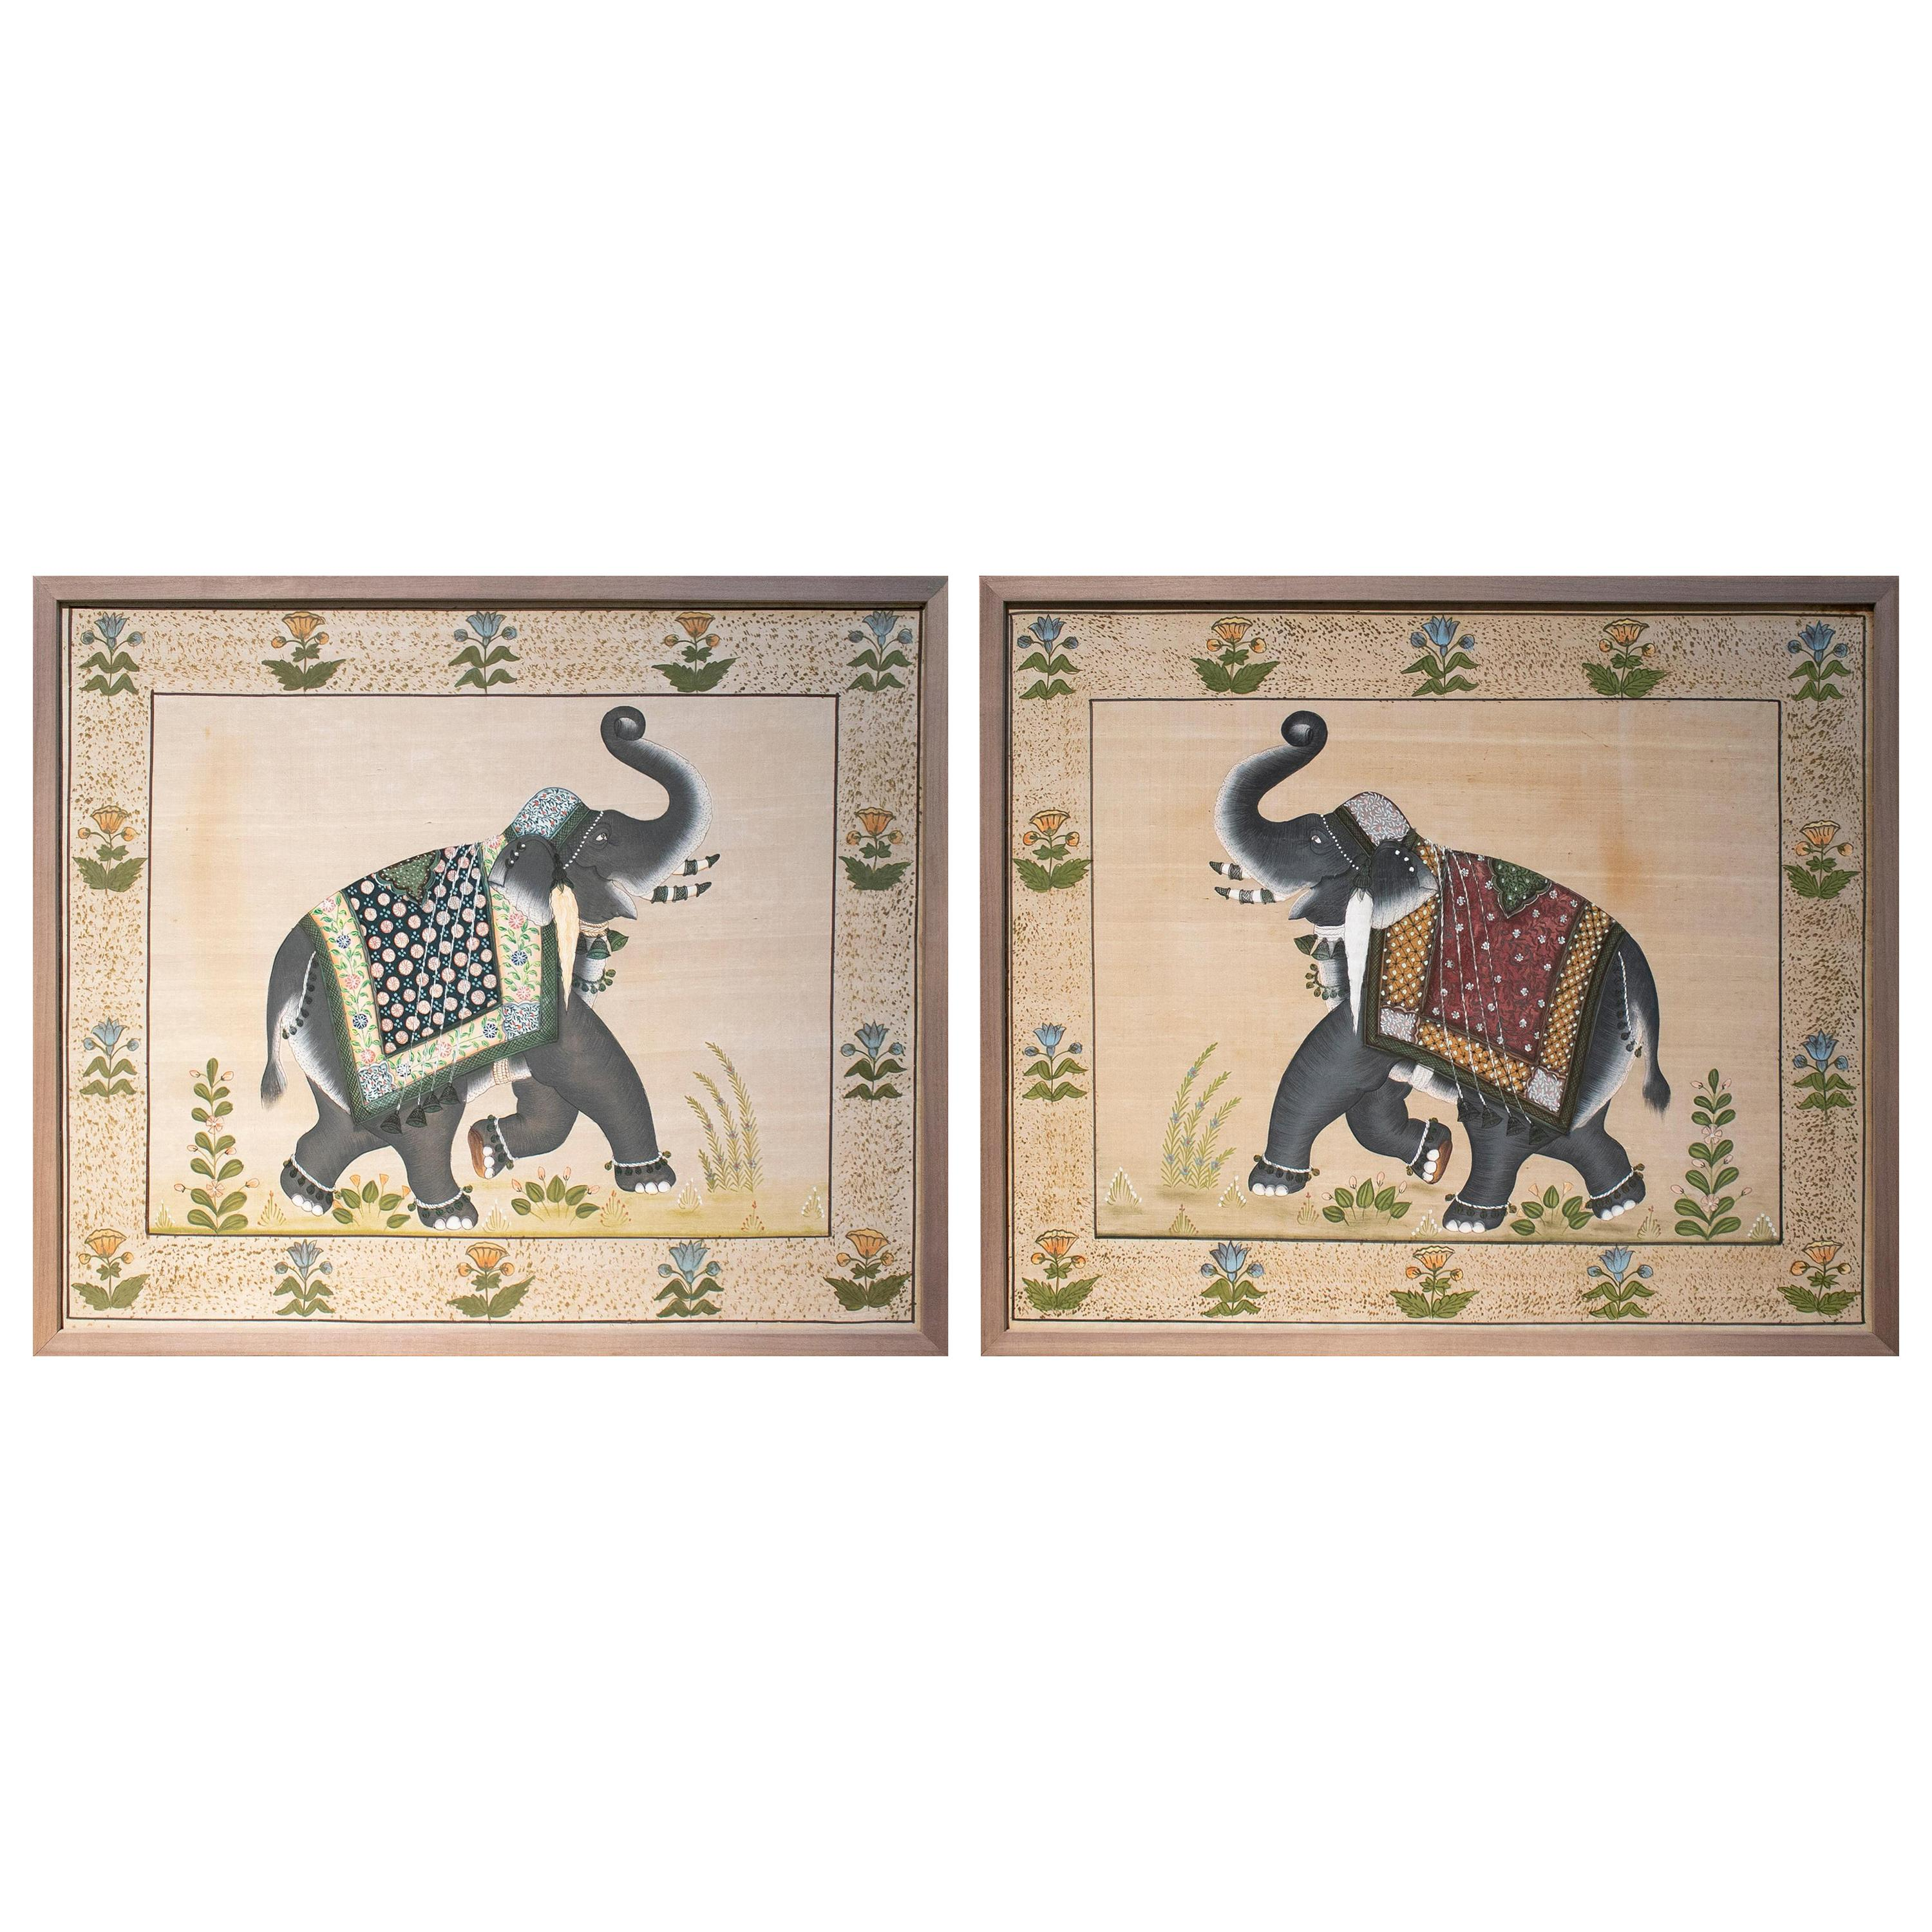 1970s Pair of Indian Elephant Paintings on Silk